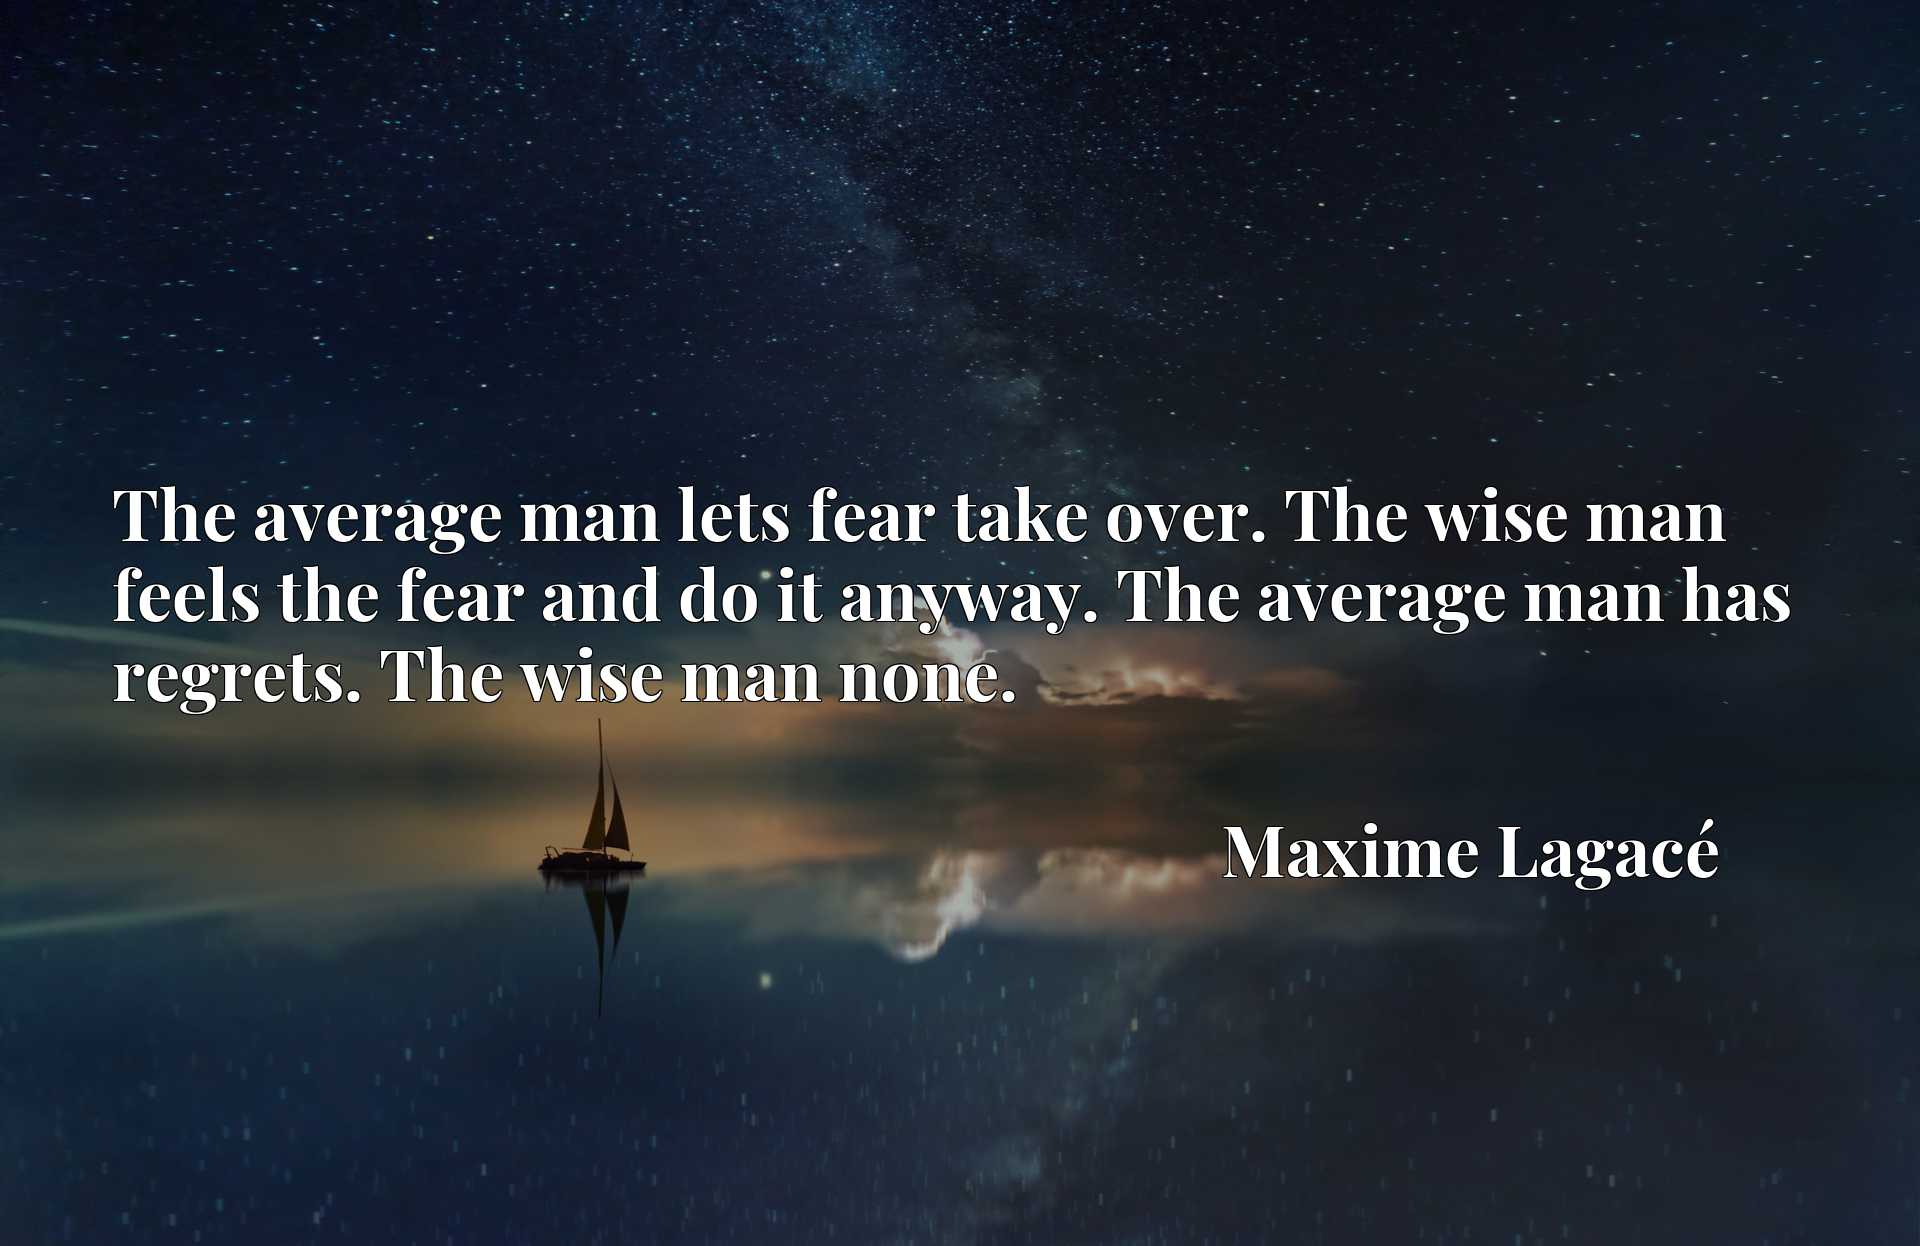 The average man lets fear take over. The wise man feels the fear and do it anyway. The average man has regrets. The wise man none.